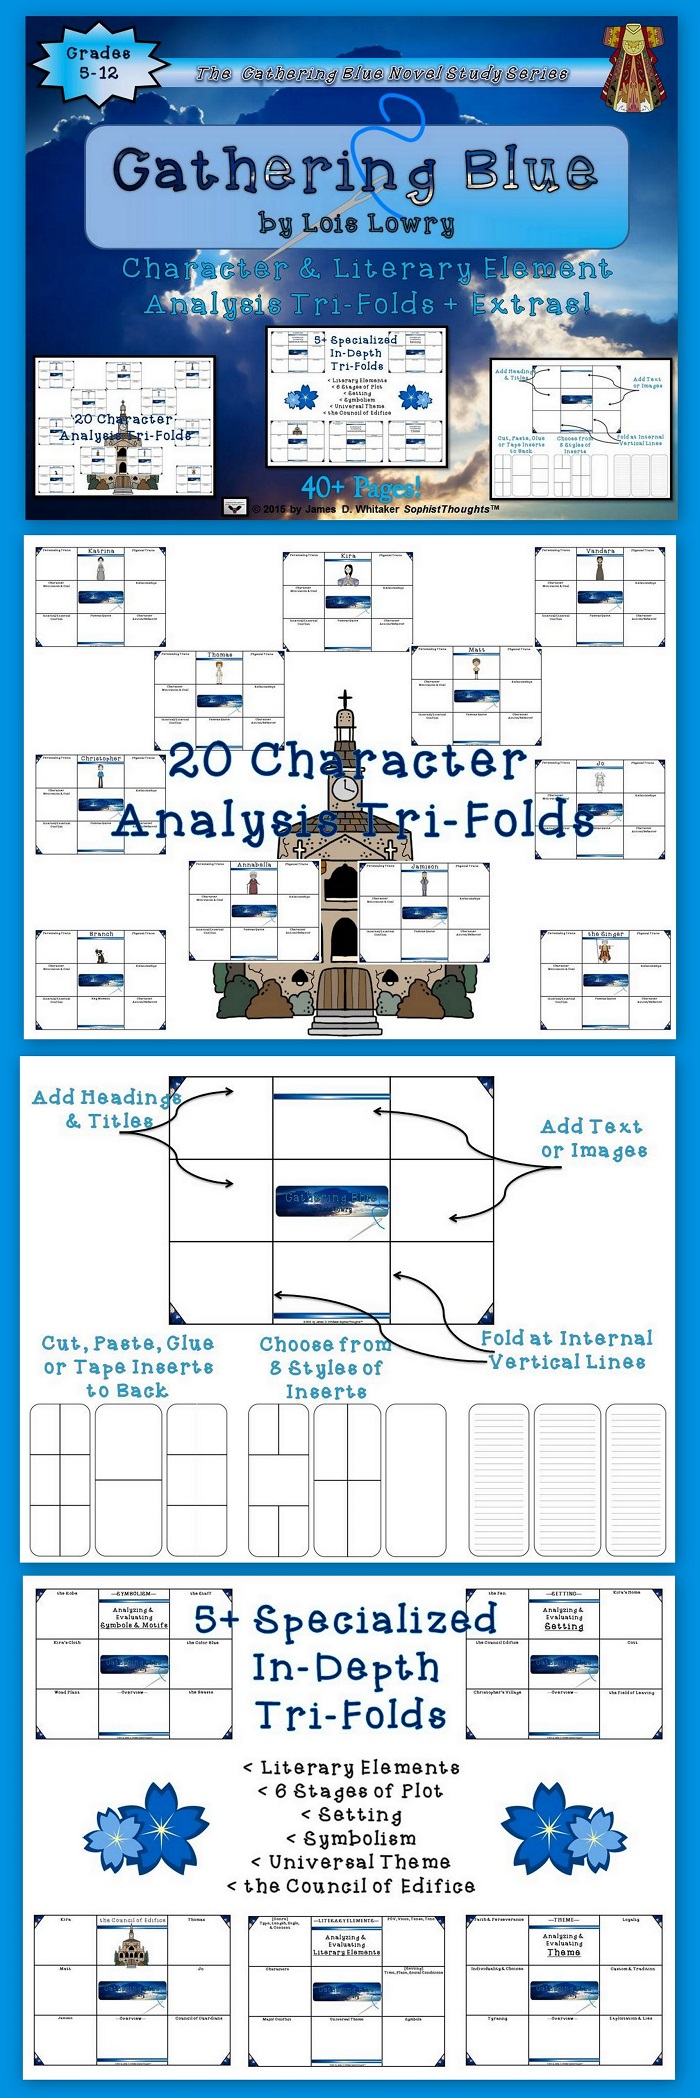 Character Design Analysis : Gathering blue by lois lowry character and plot analysis